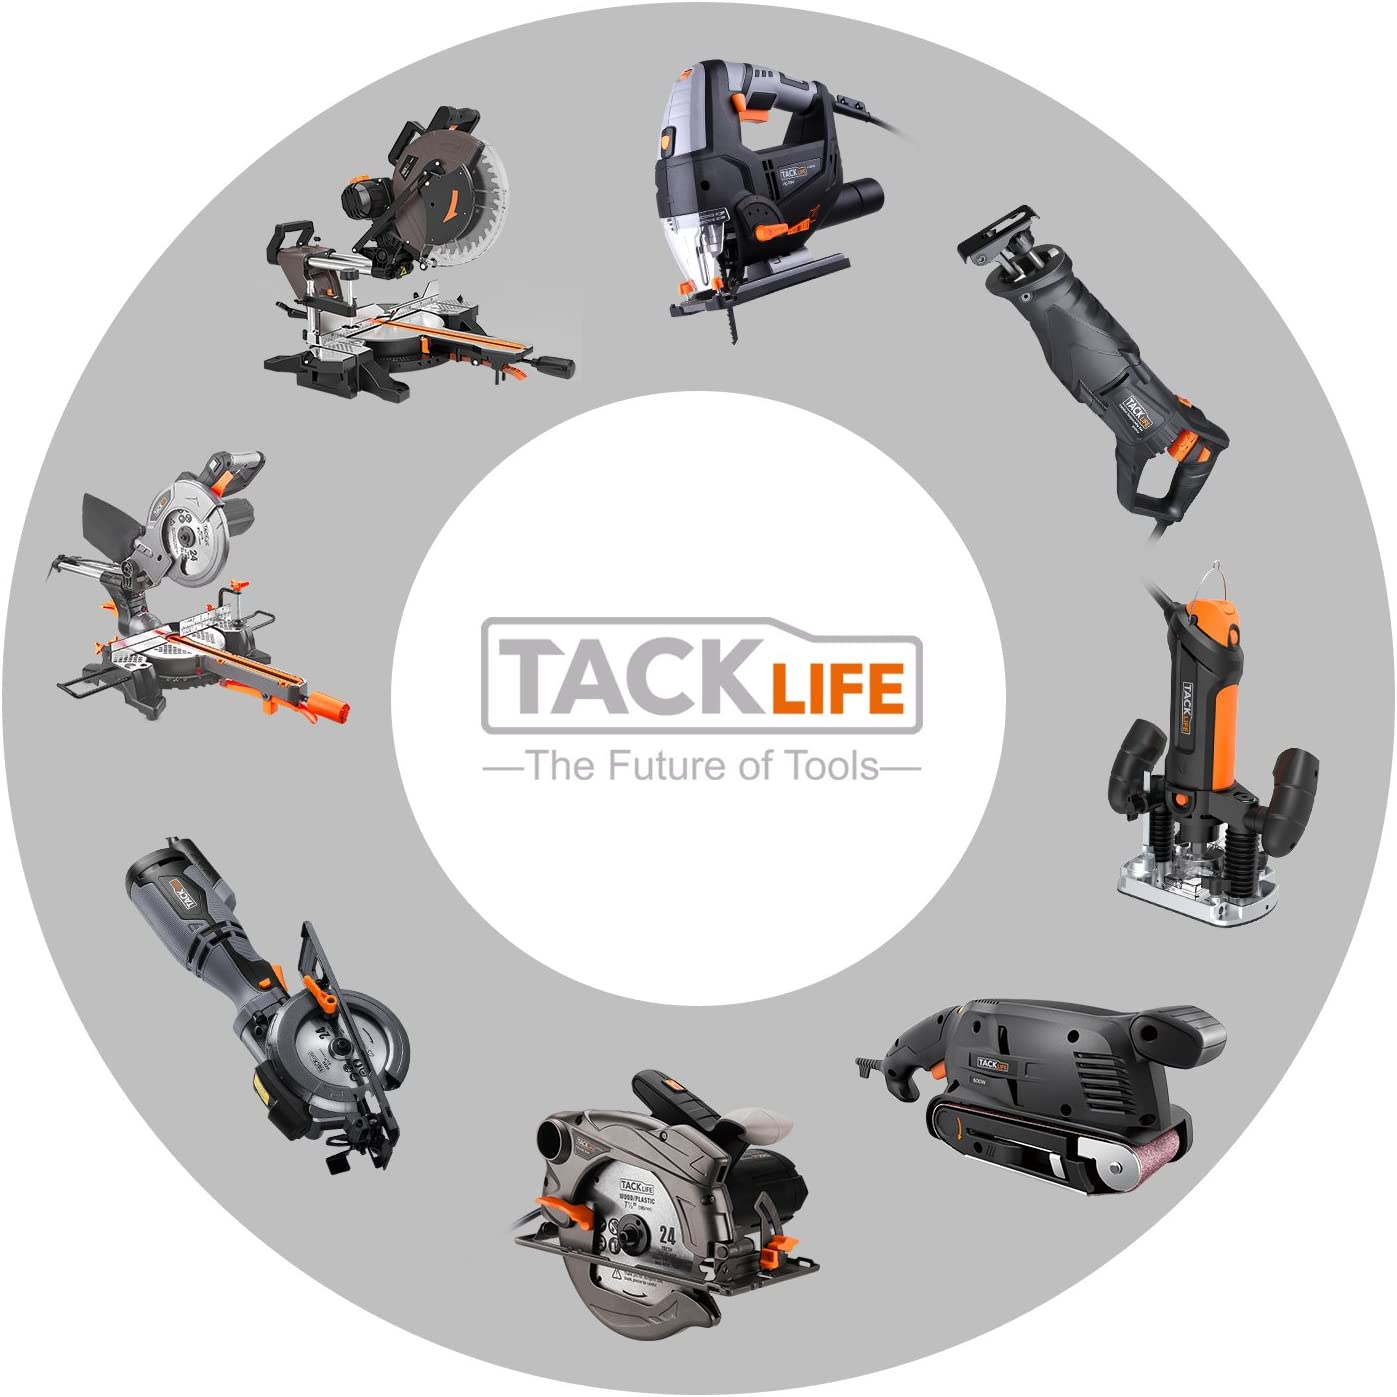 TACKLIFE PSS01A Detail Sanders product image 9